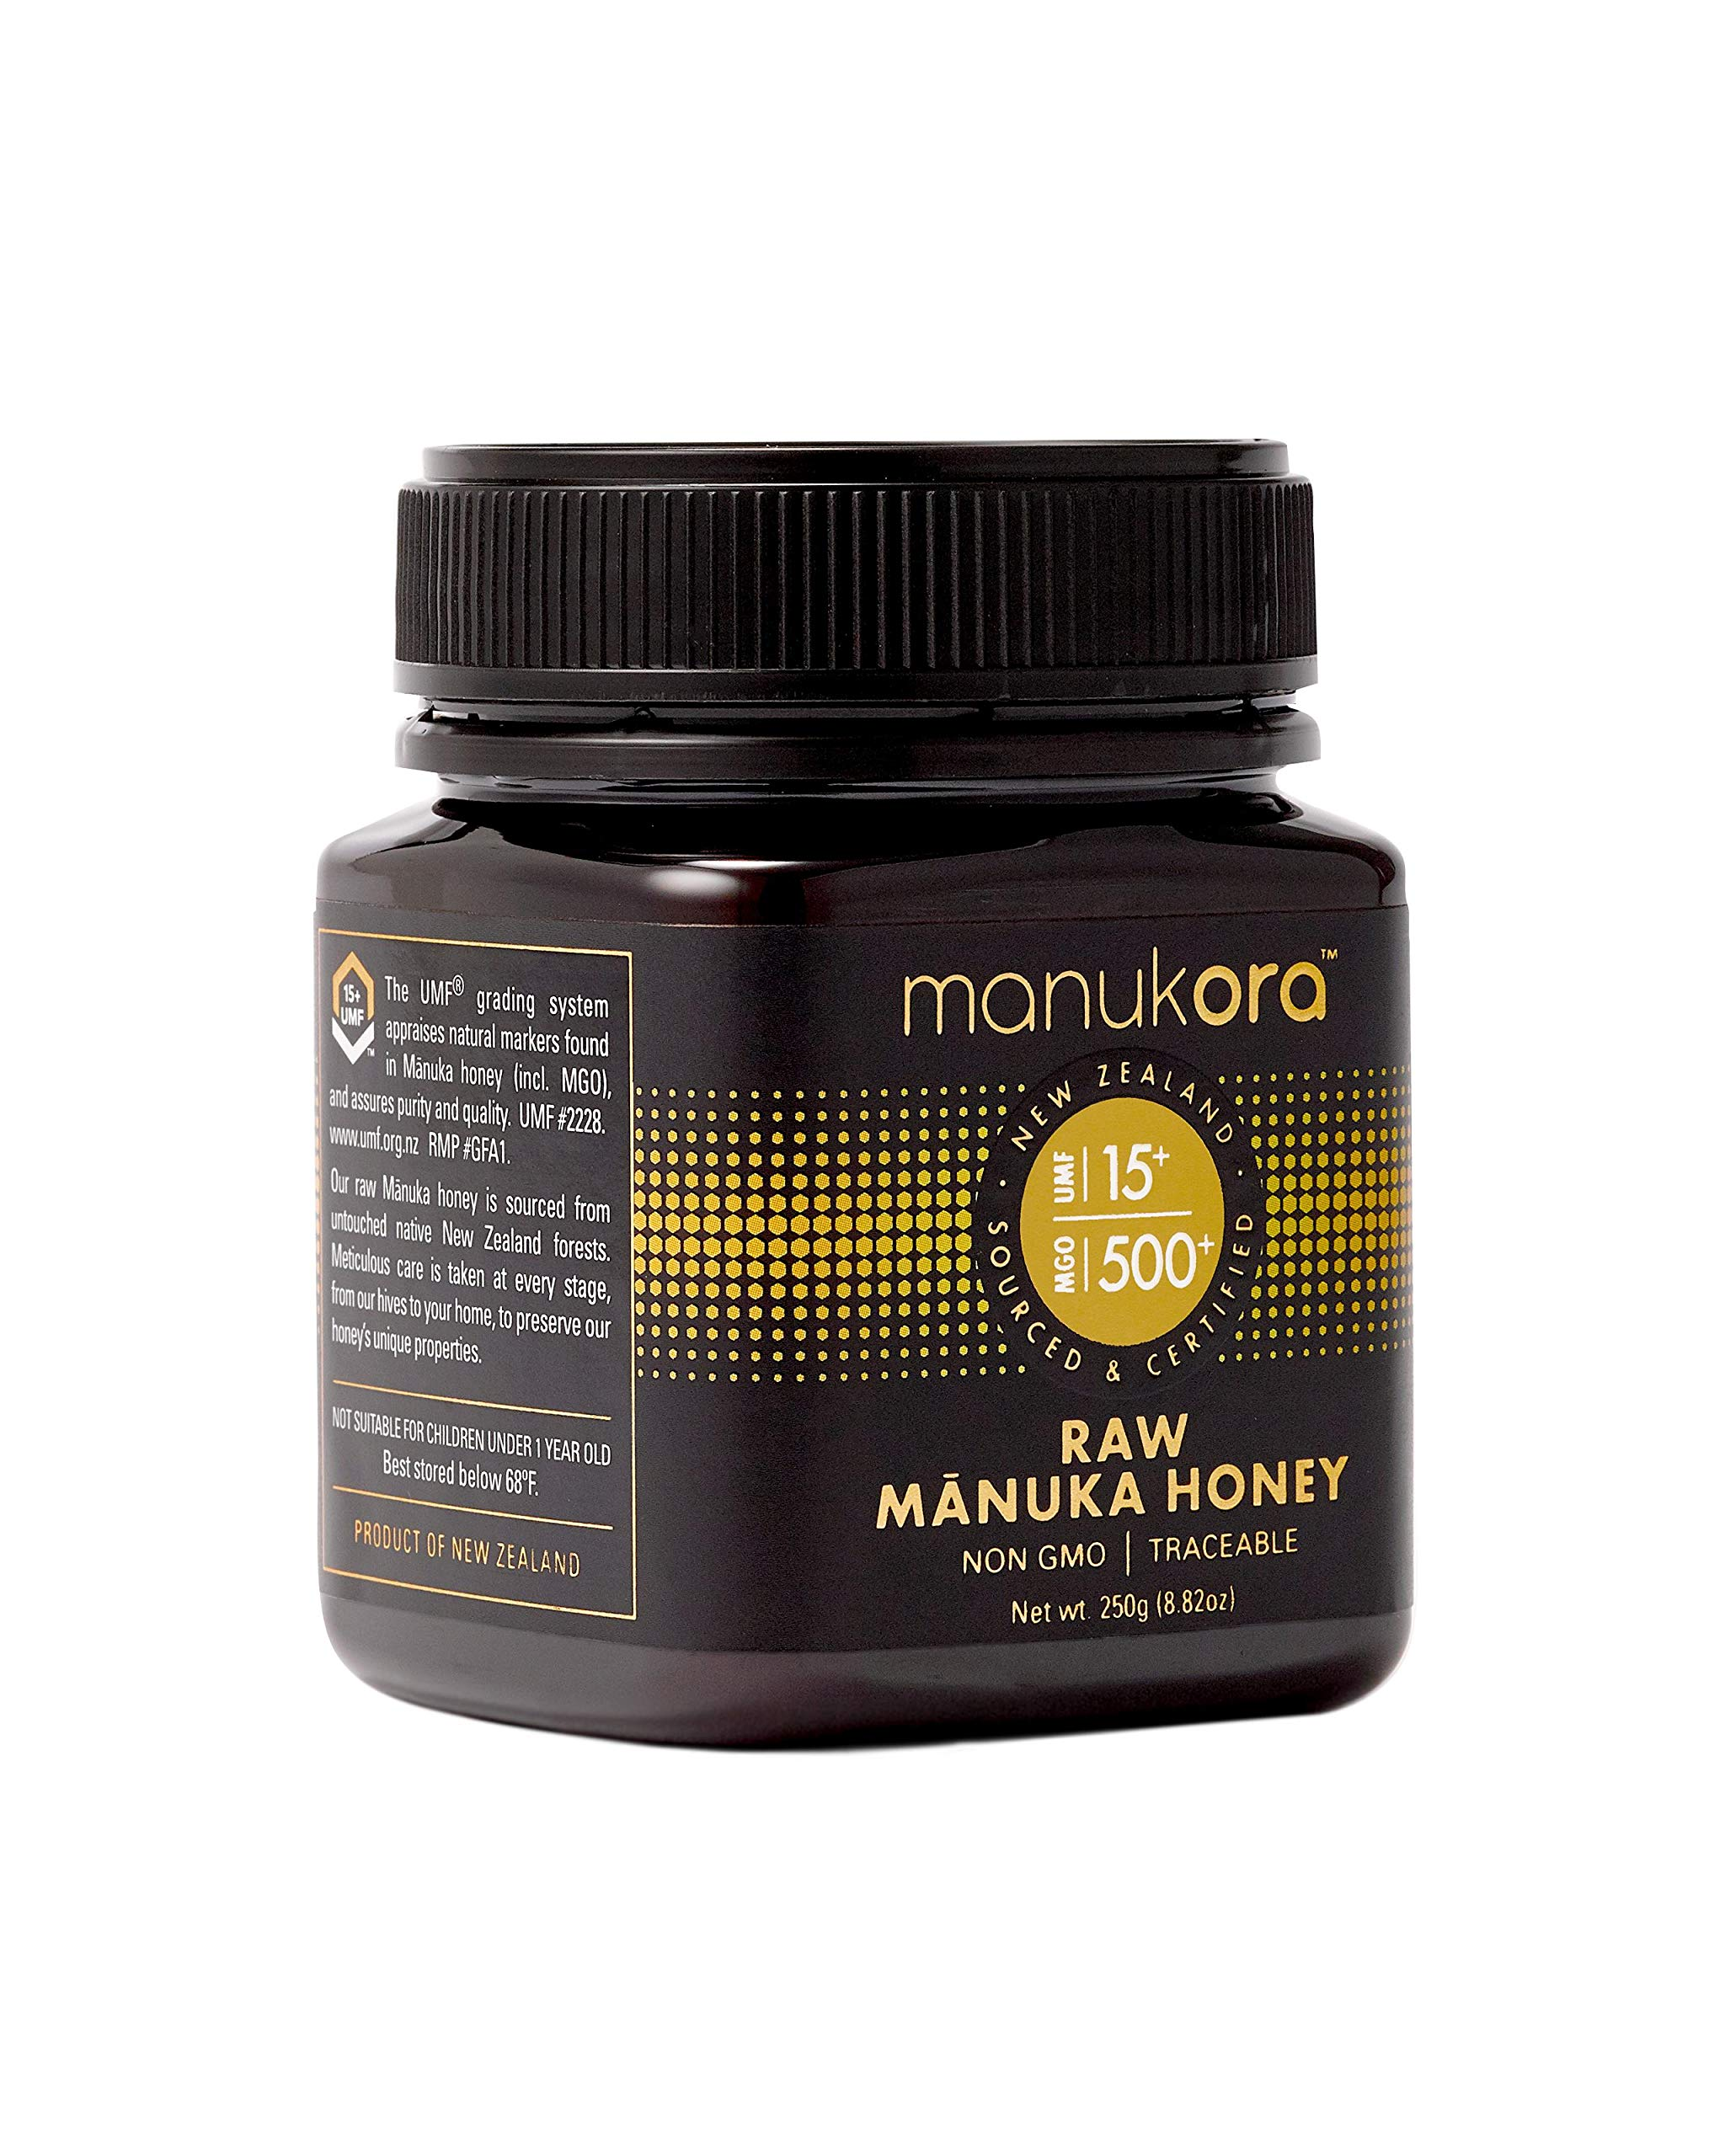 Manukora UMF 15+/MGO 500+ Raw Mānuka Honey (250g/8.8oz) Authentic Non-GMO New Zealand Honey, UMF & MGO Certified, Traceable from Hive to Hand by Manukora (Image #2)